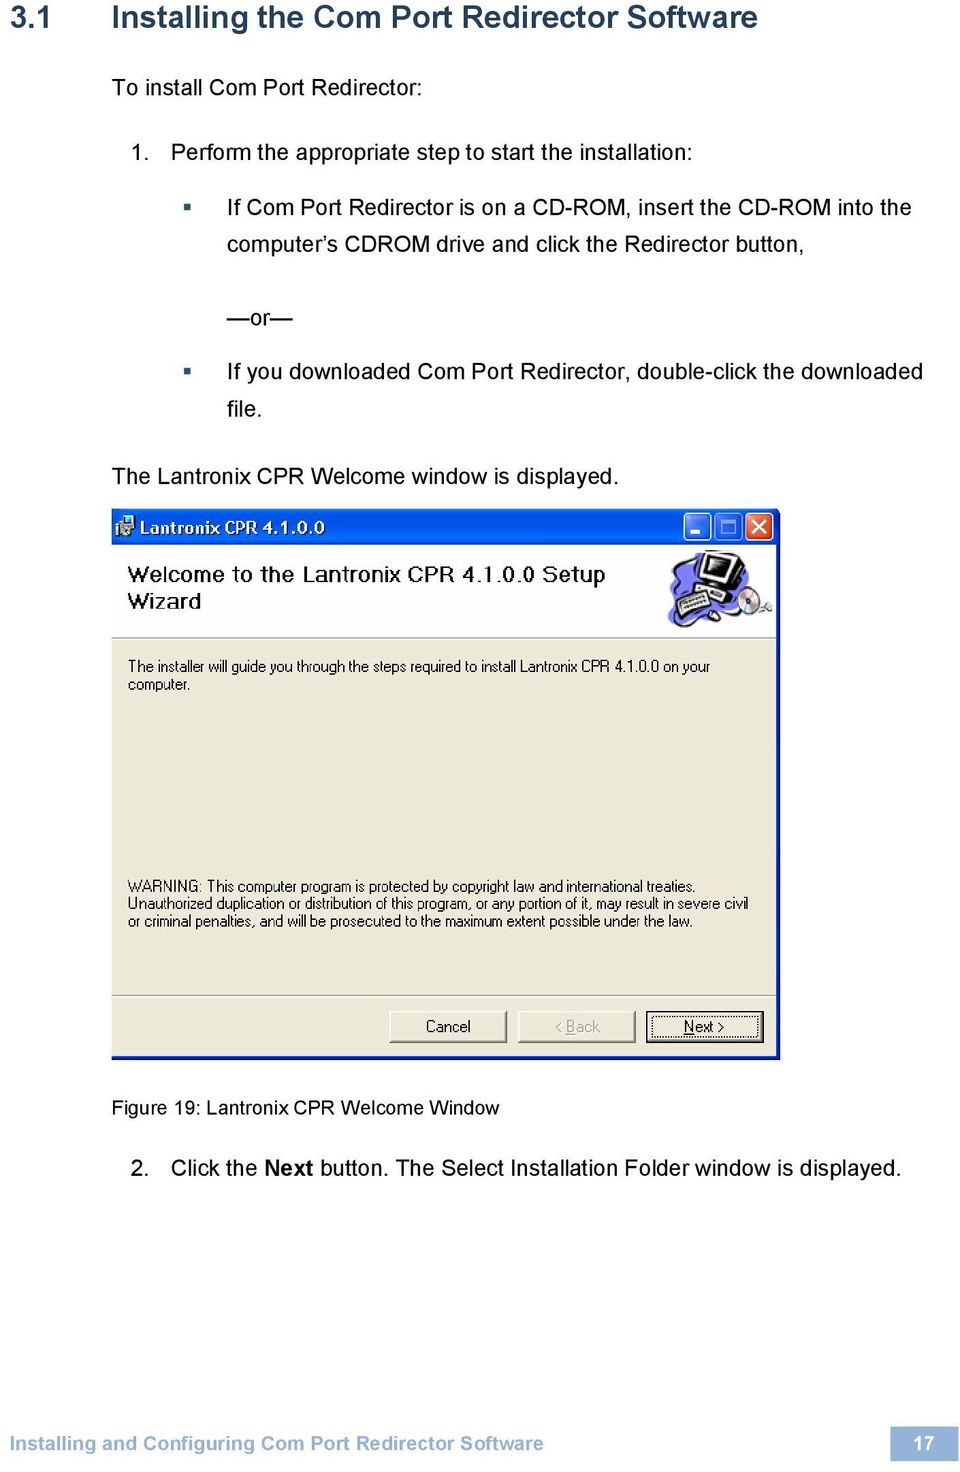 drive and click the Redirector button, or If you downloaded Com Port Redirector, double-click the downloaded file.